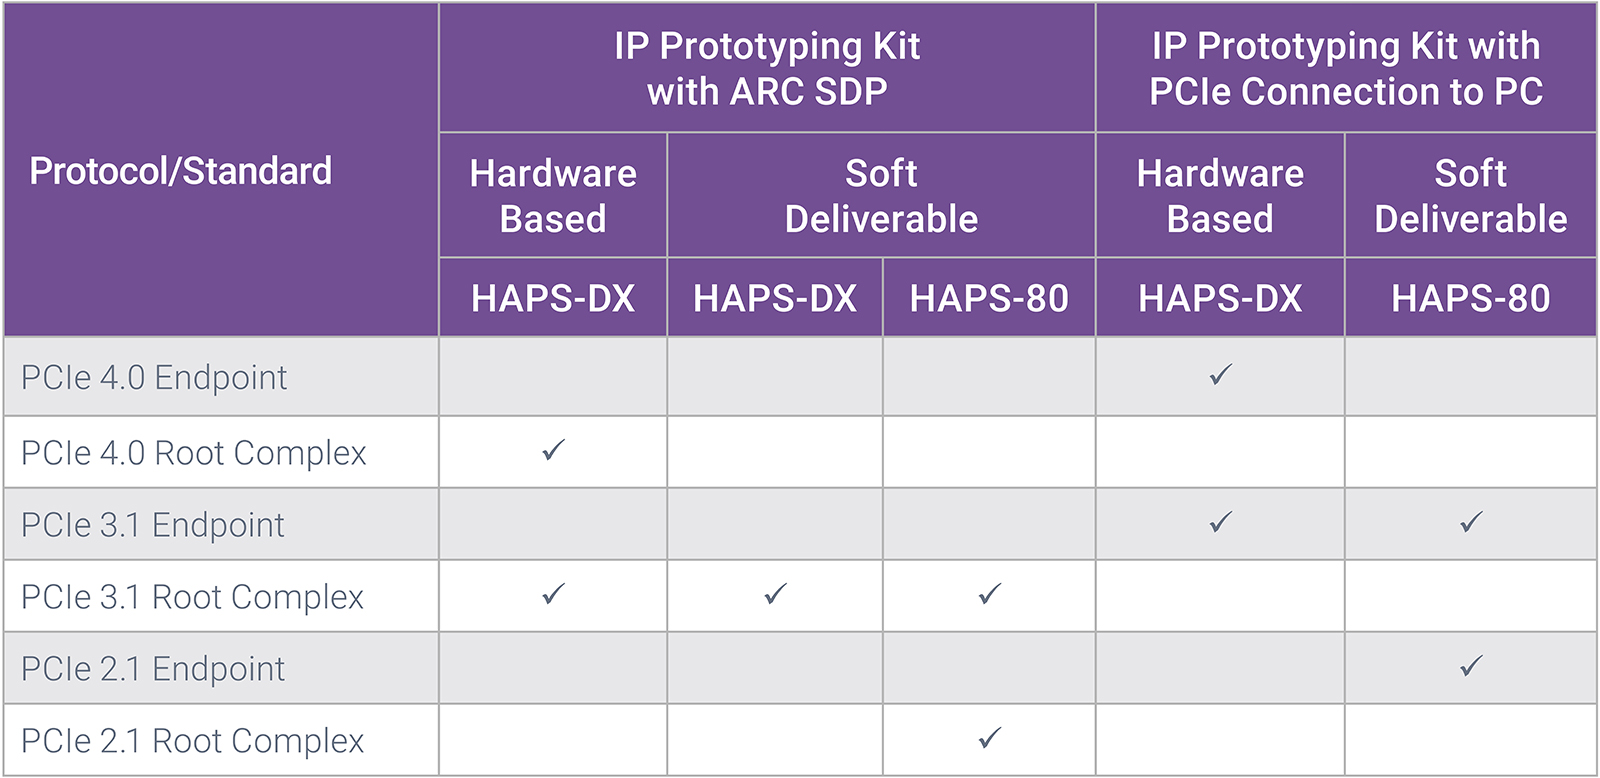 IP Prototyping Kits for PCIe 4.0, 3.0 & 2.0